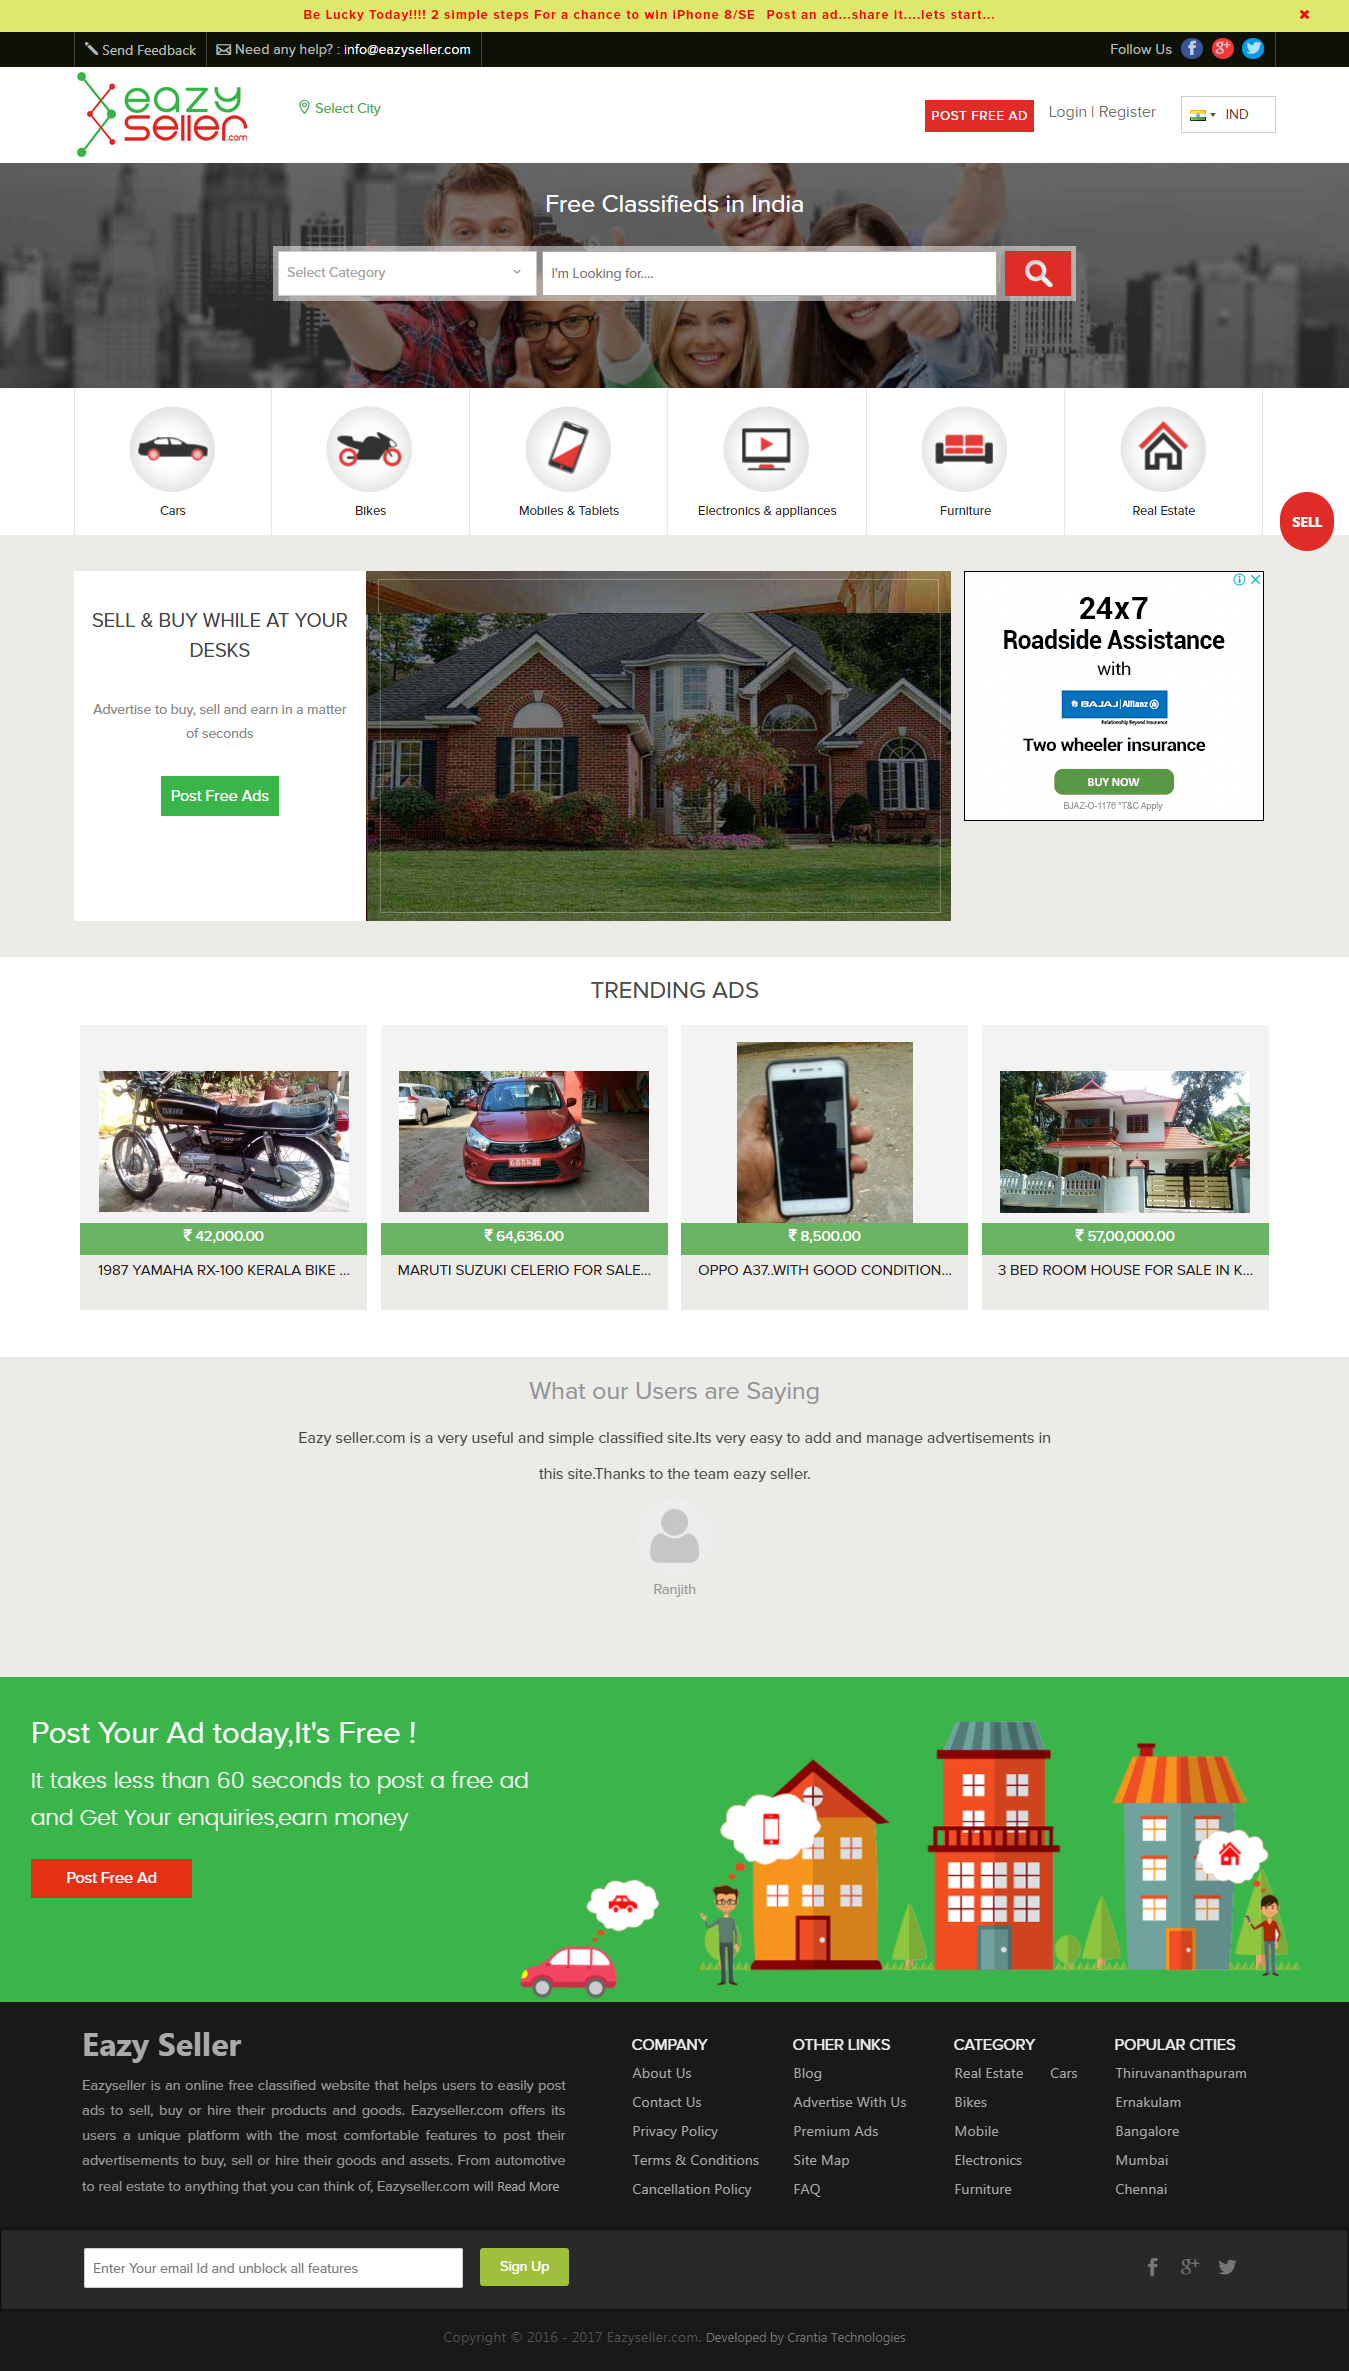 Eazyseller is an online free classified website that helps users to